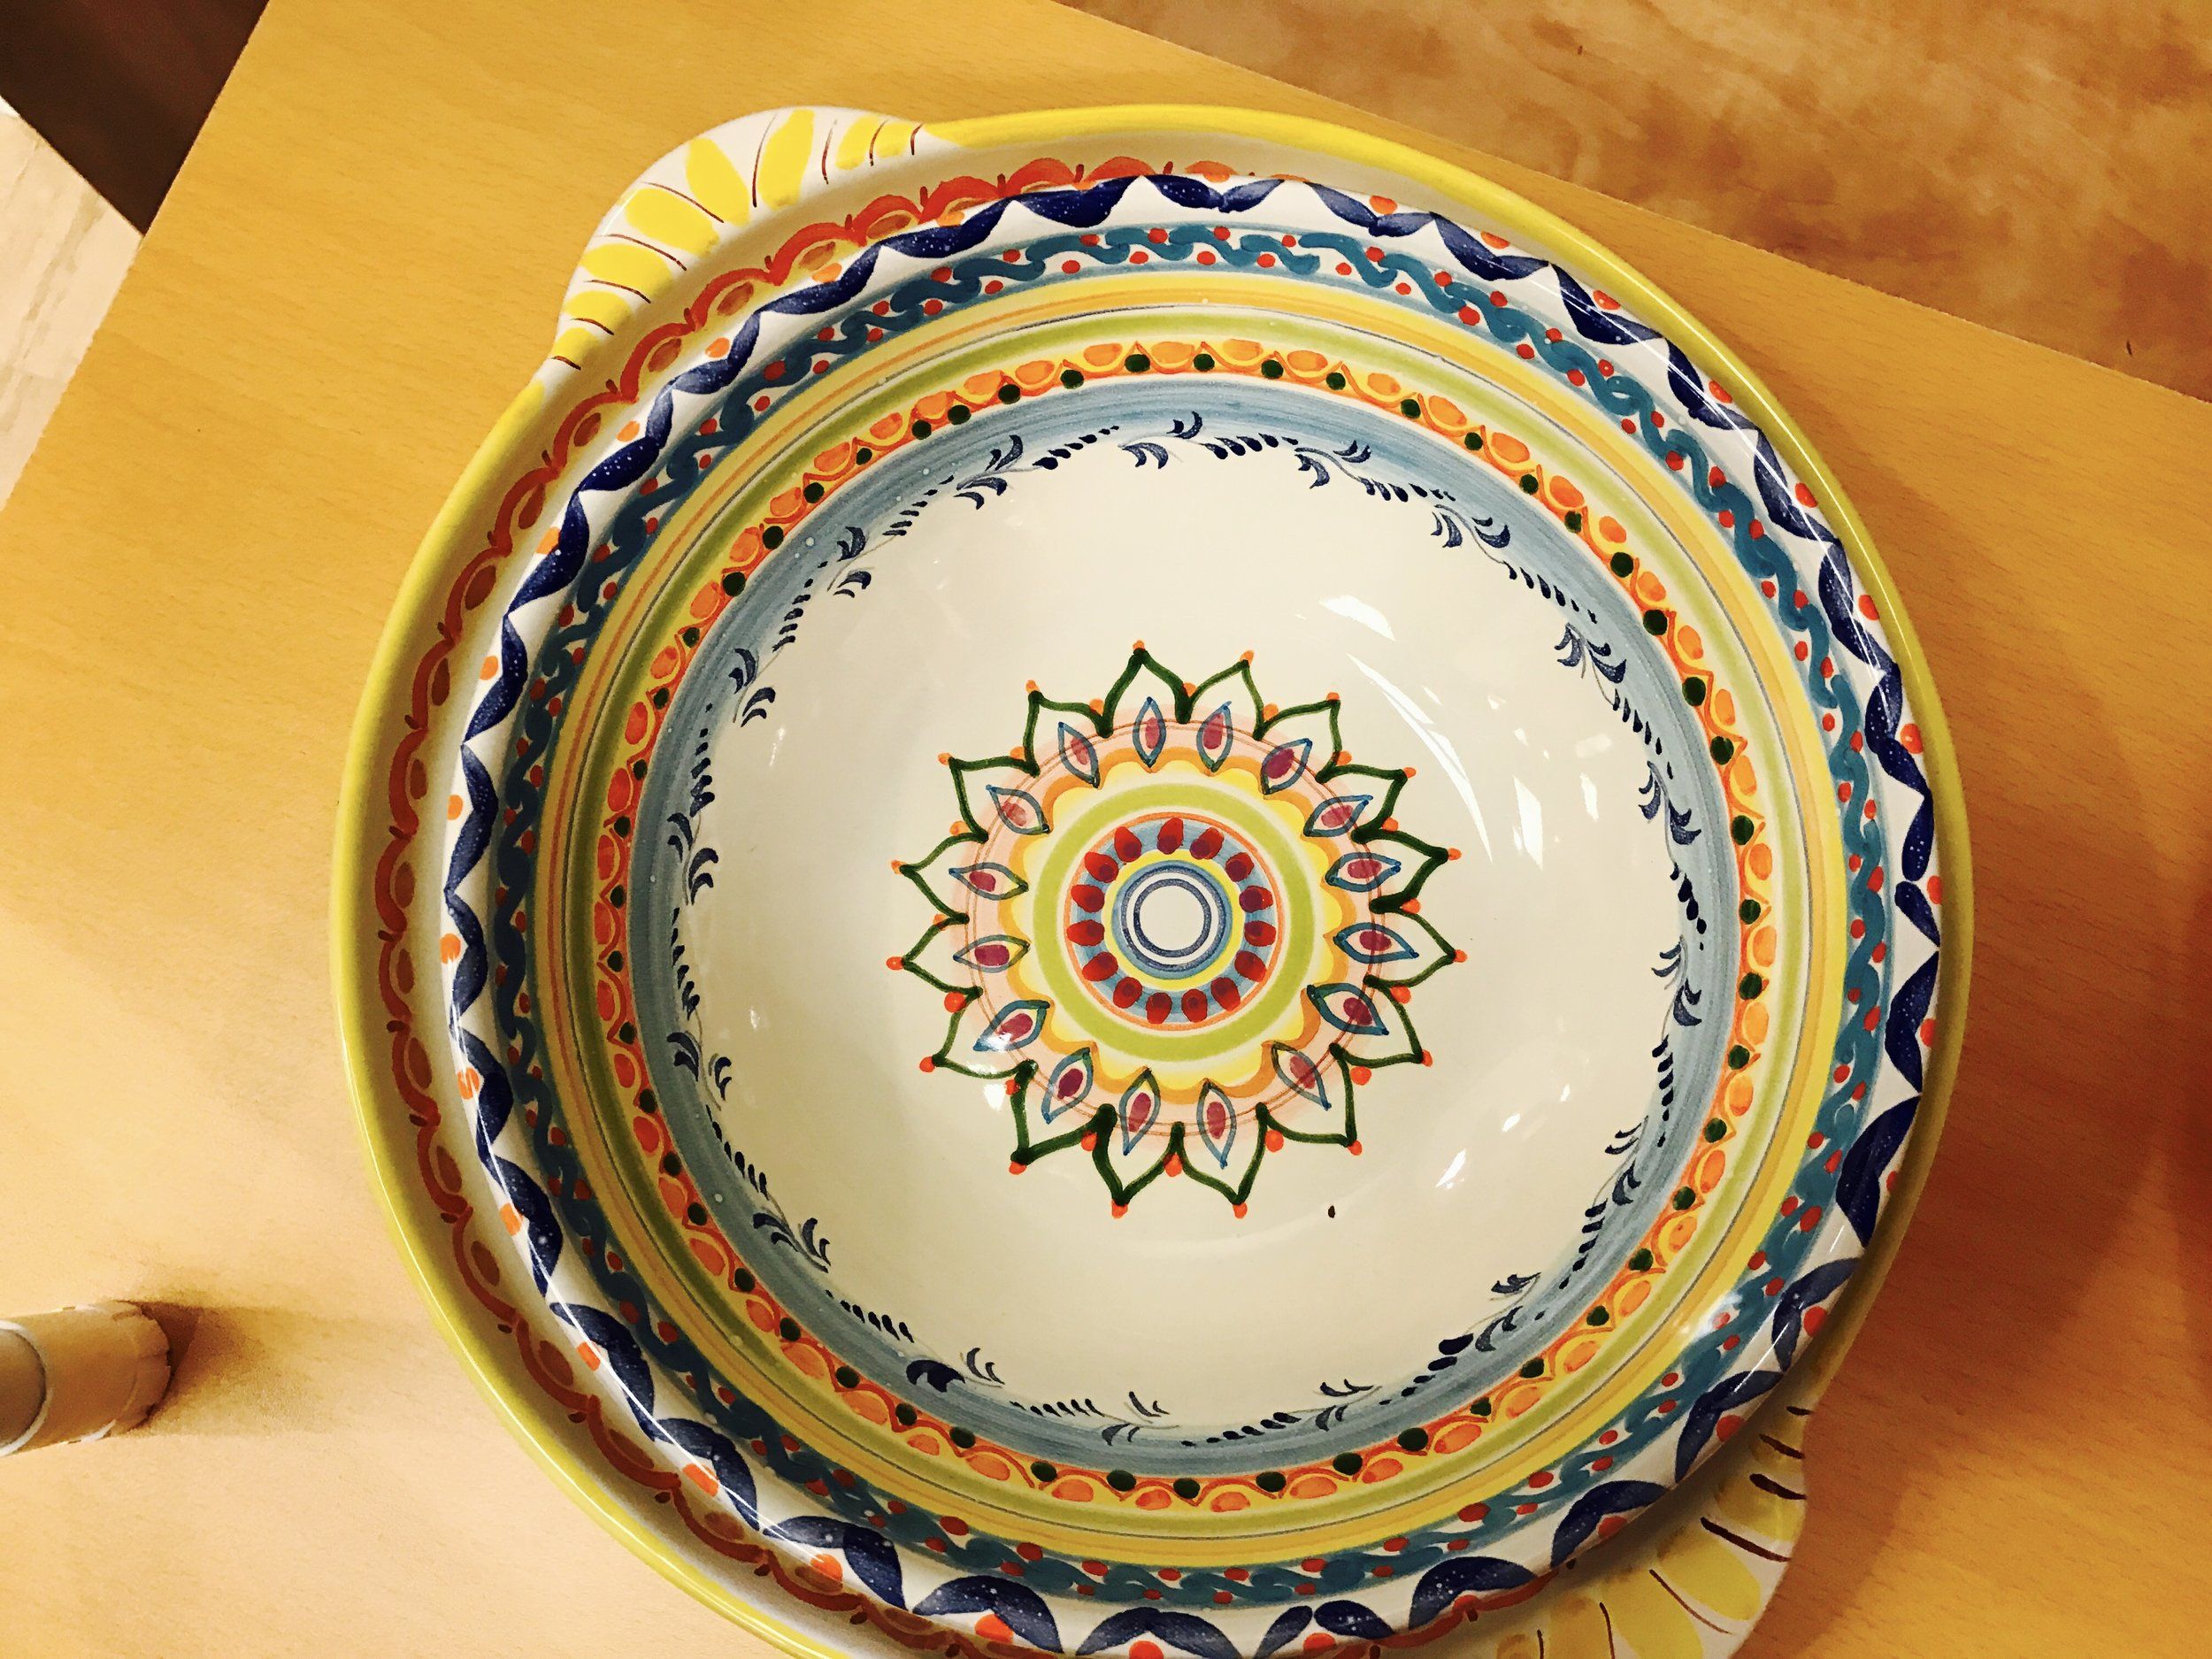 Beyond food - Kings is also importing hand-painted ceramics.